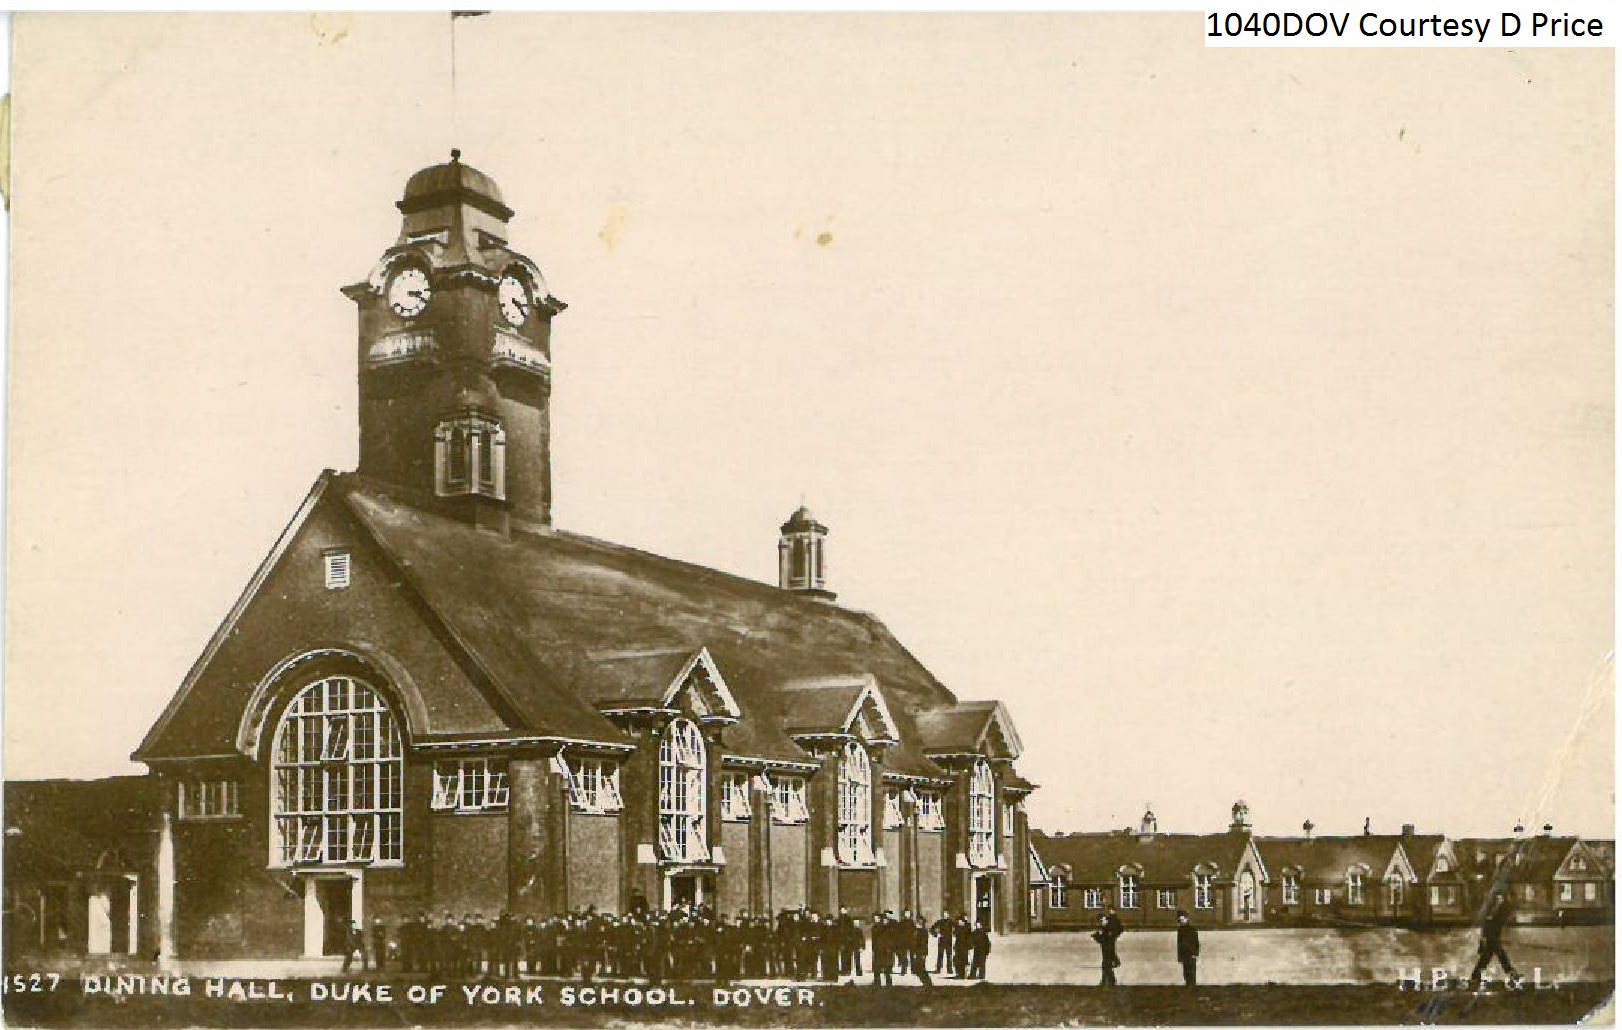 Dining Hall,Duke of York School